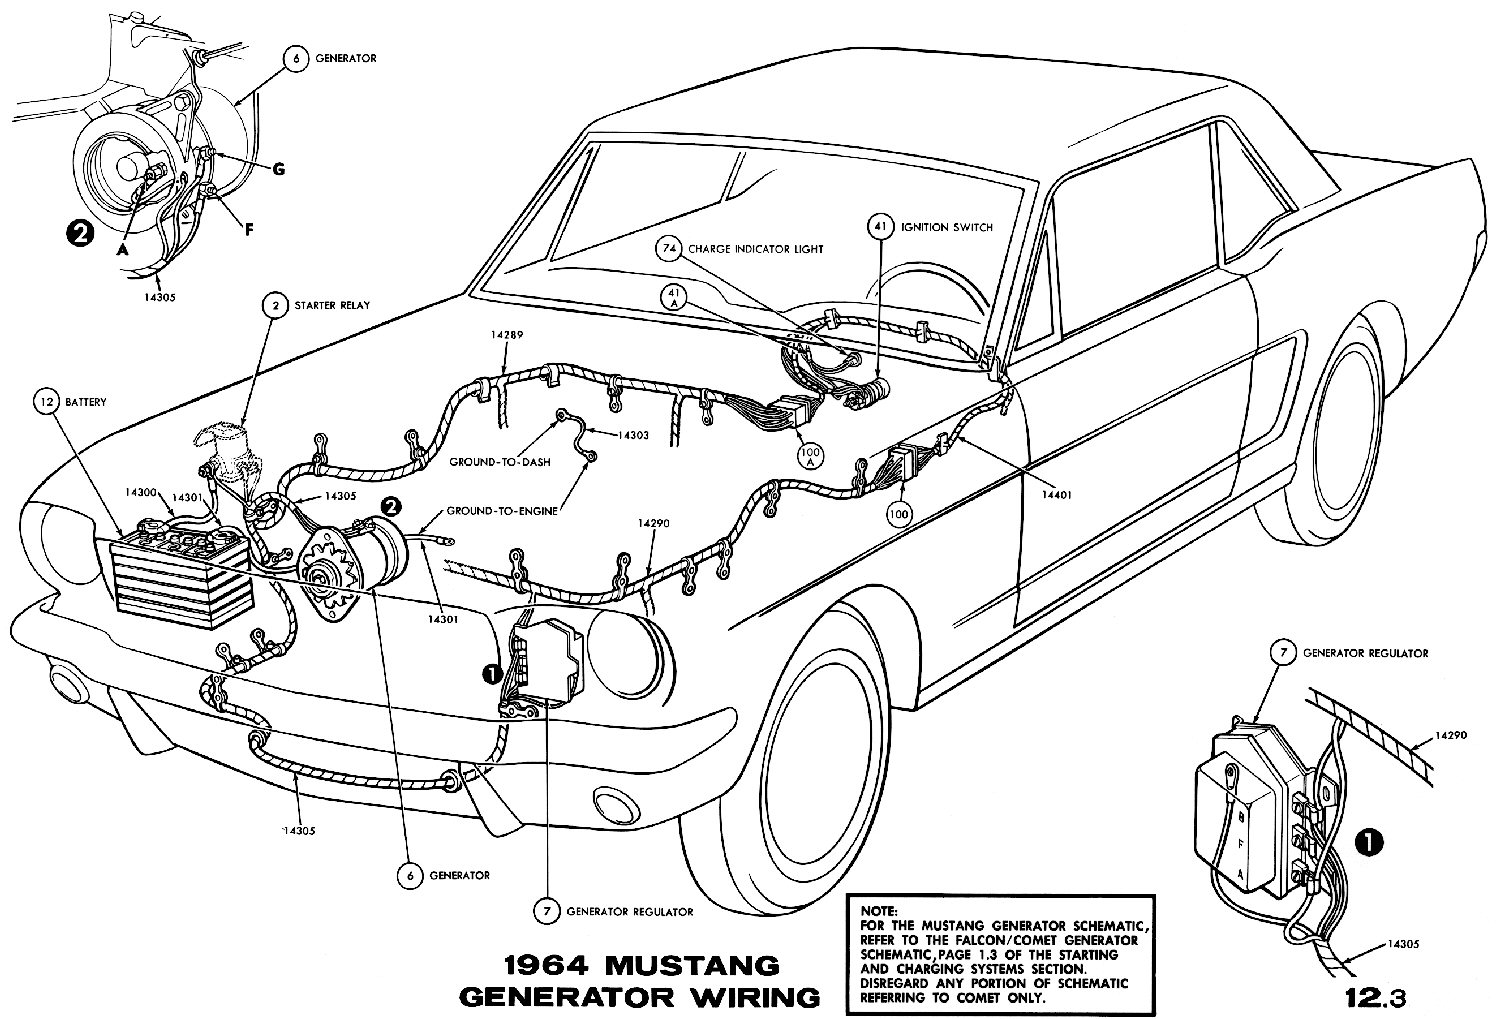 1964 Mustang Wiring Diagrams Average Joe Restoration 1948 Ford Generator Diagram Sm1964f Pictorial Or Schematic